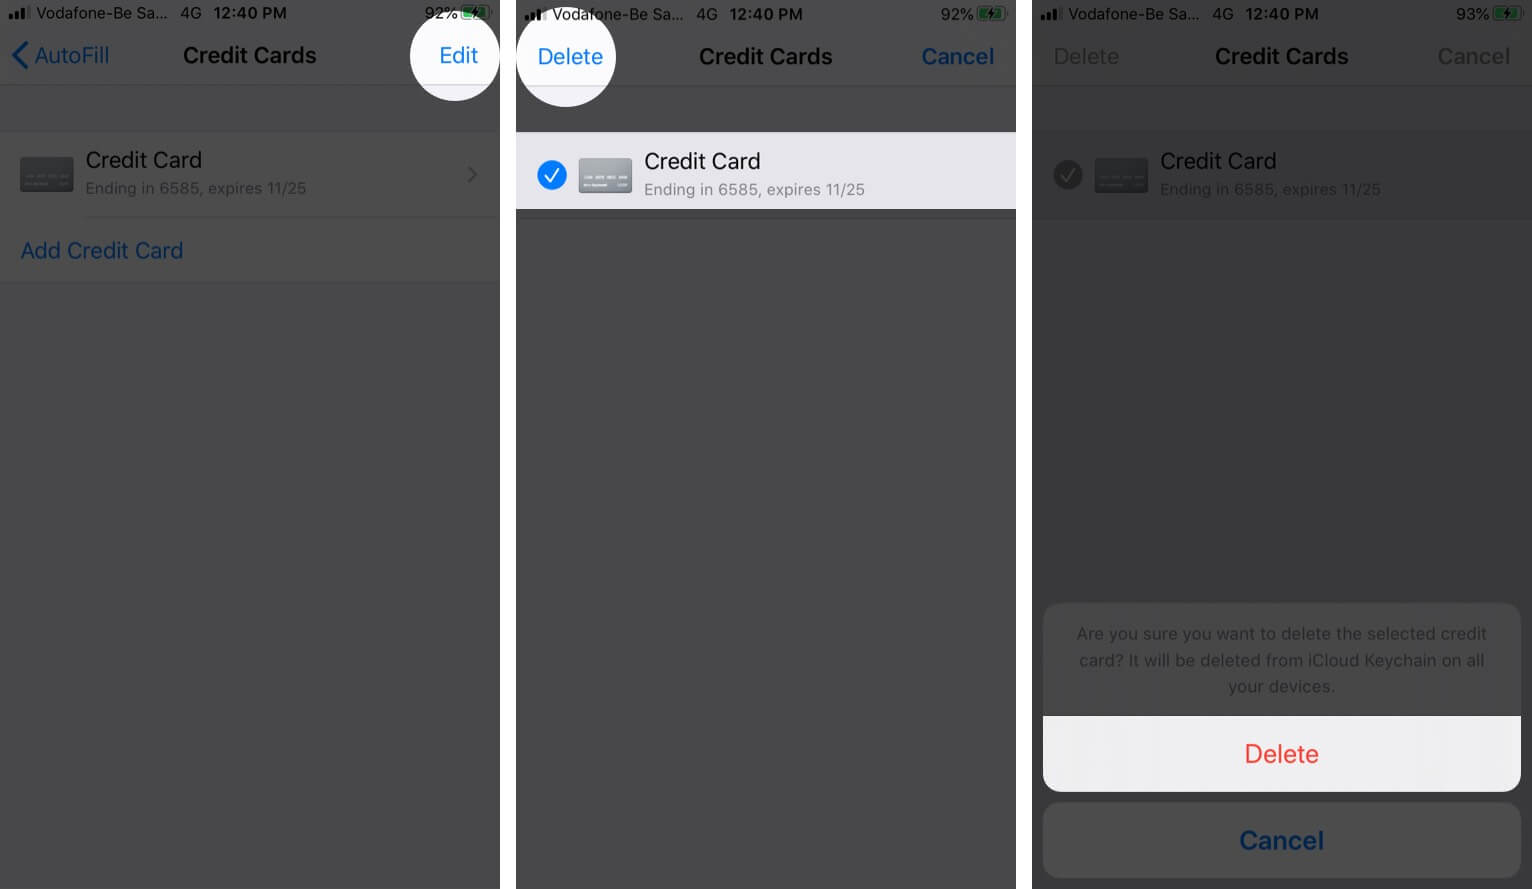 Delete Credit Card Details from iCloud Keychain on iPhone